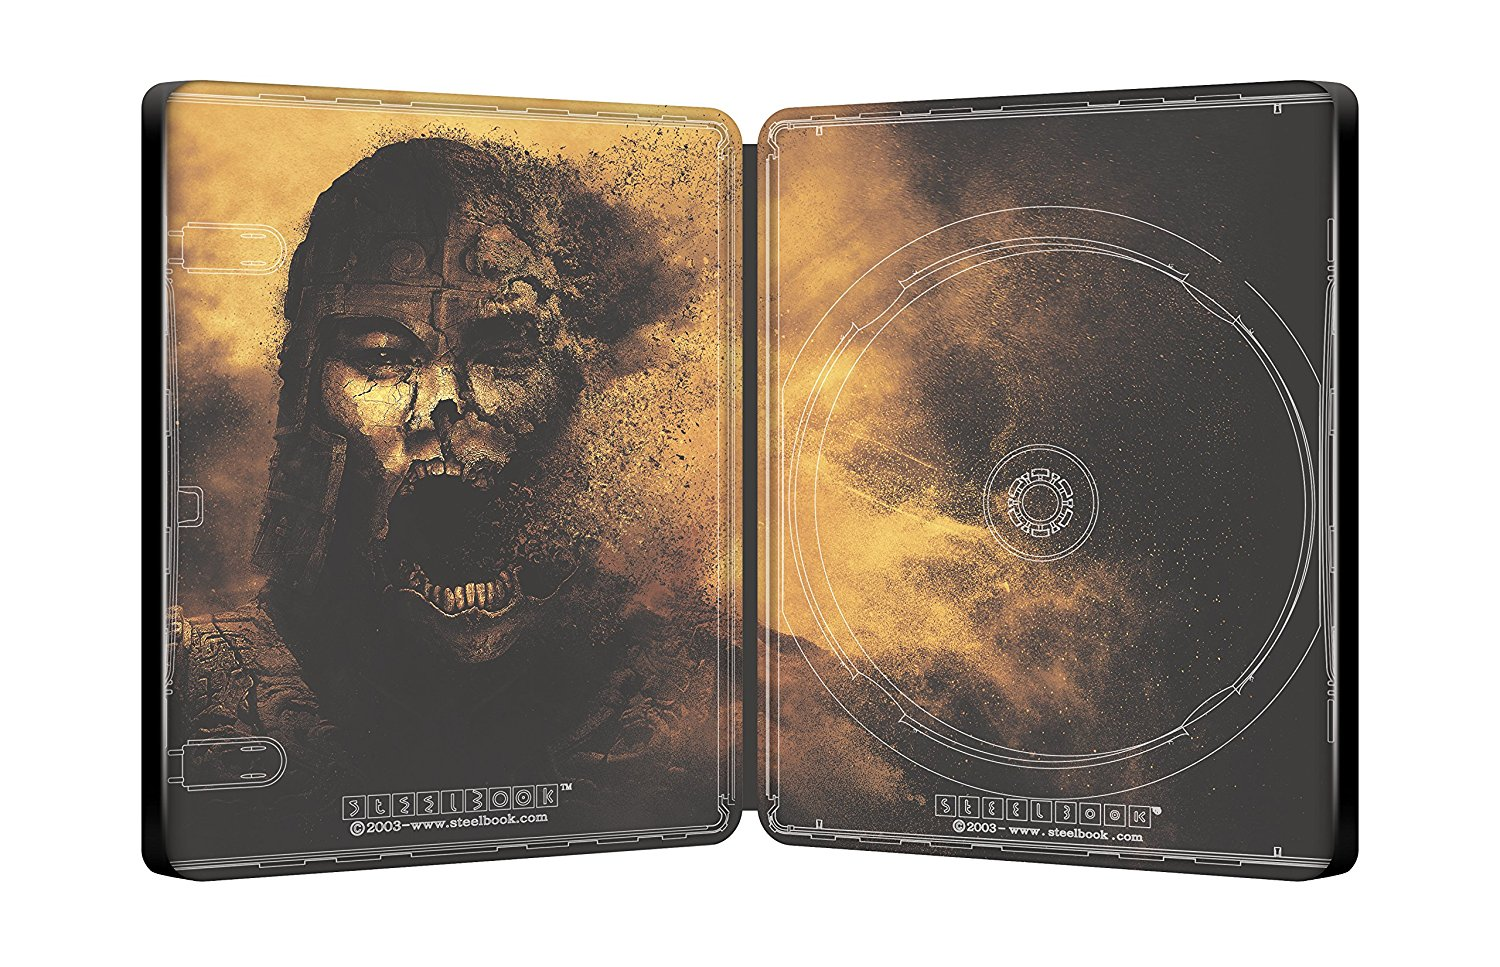 Mummy dragon steelbook 2